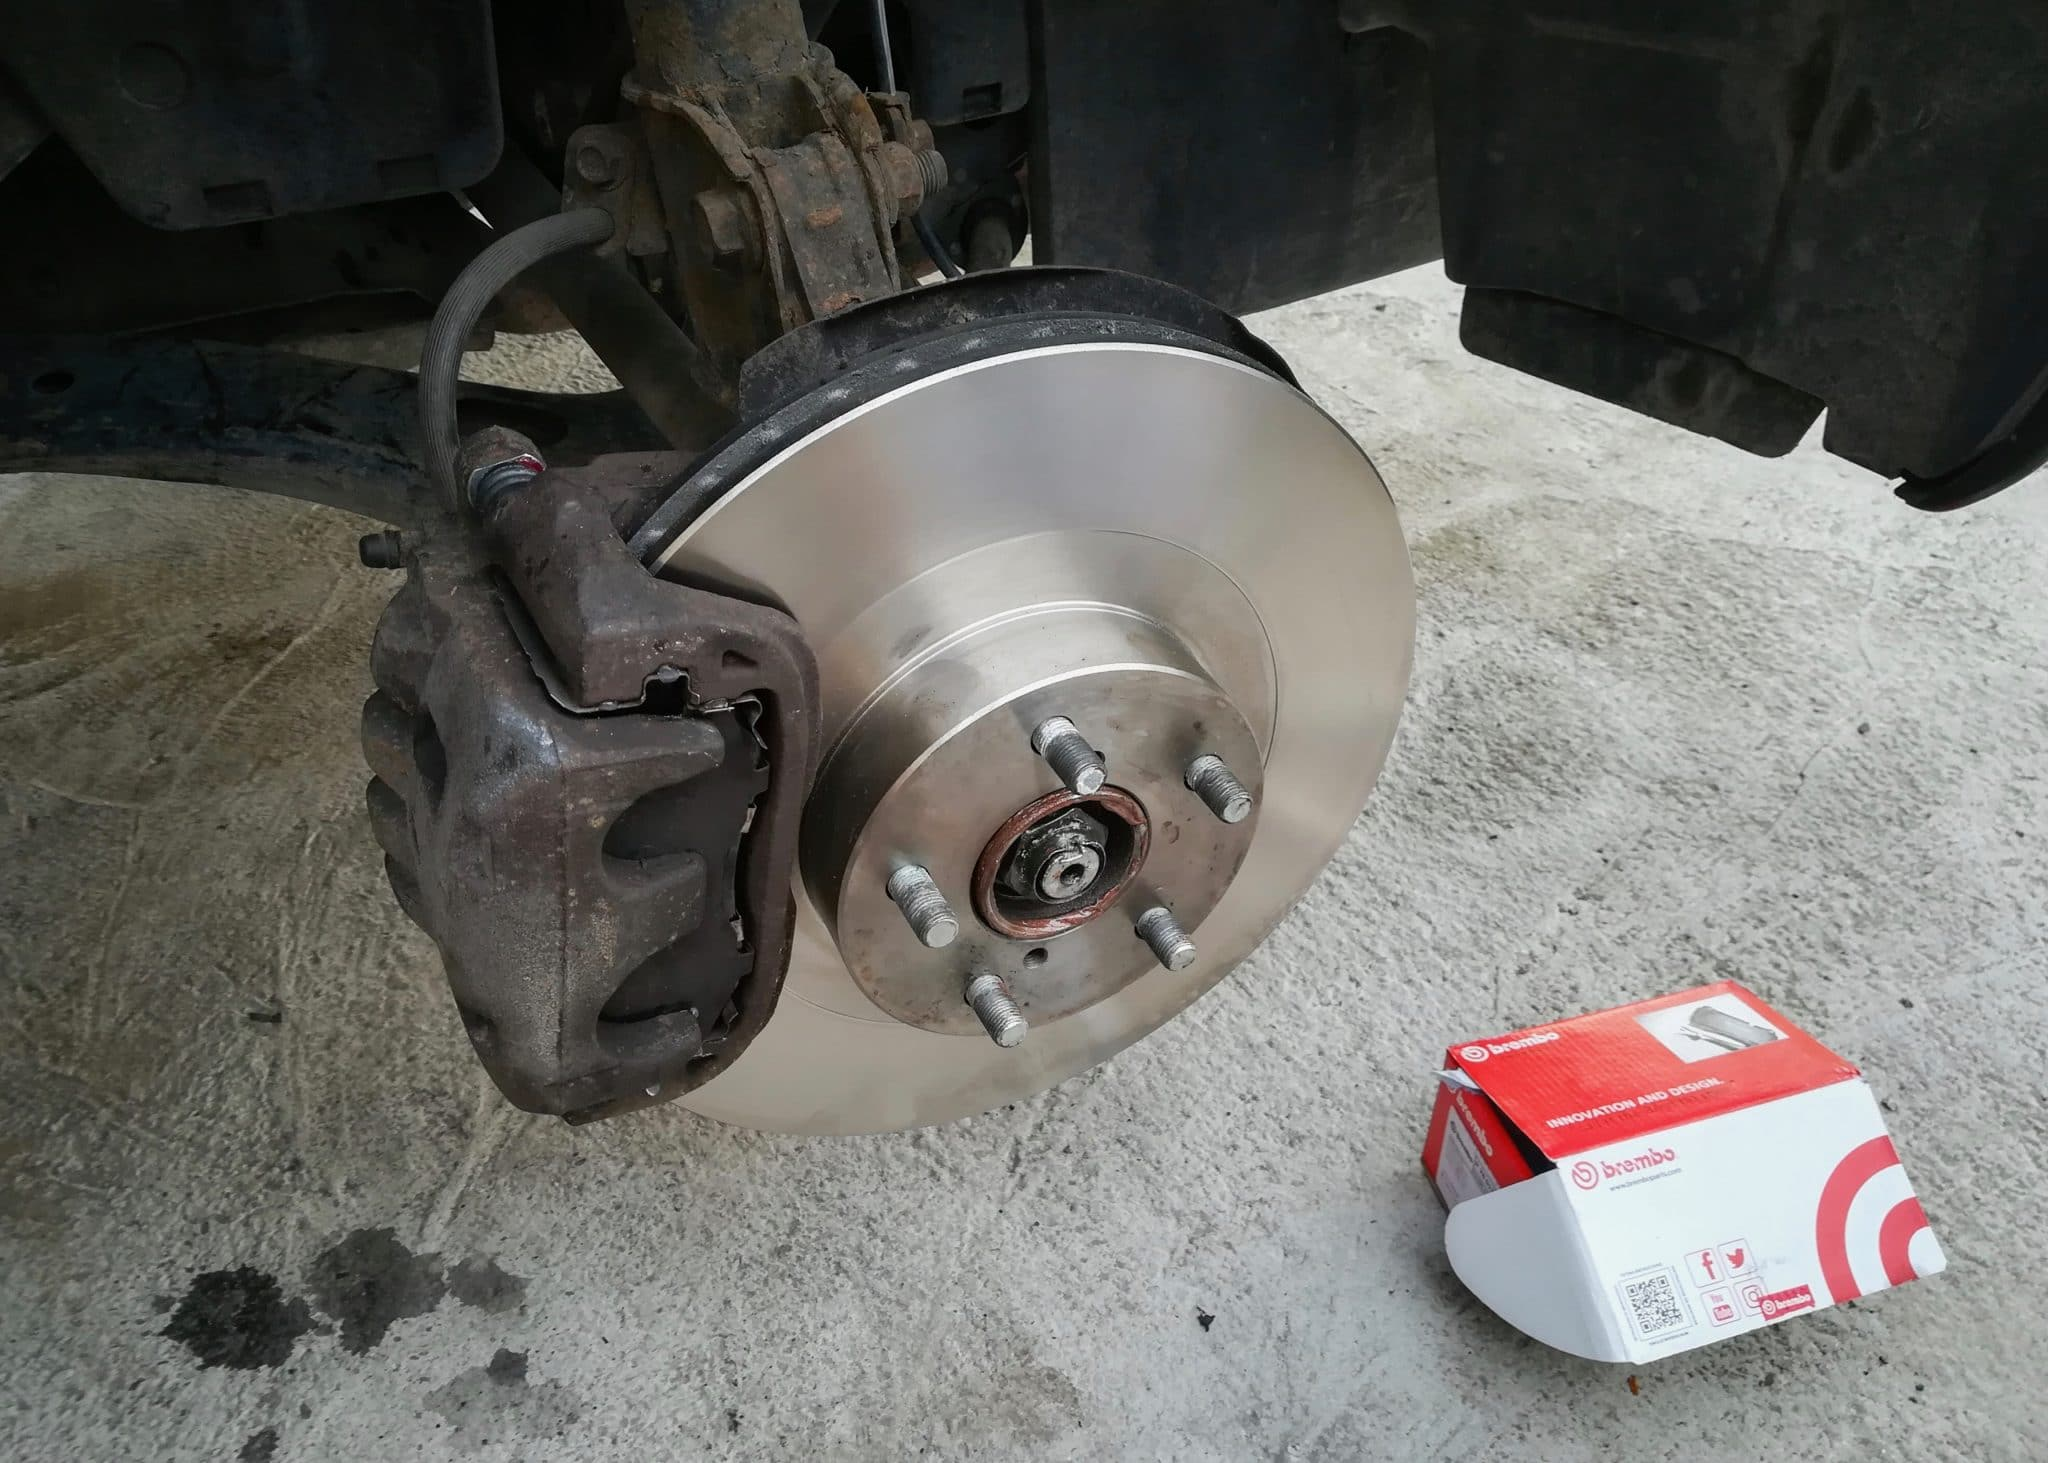 brakes, disc brakes, brembo, brake job, Subaru, Outback, Subaru Outback, N2G, Not2Grand, Not 2 Grand, not2grand.co.uk